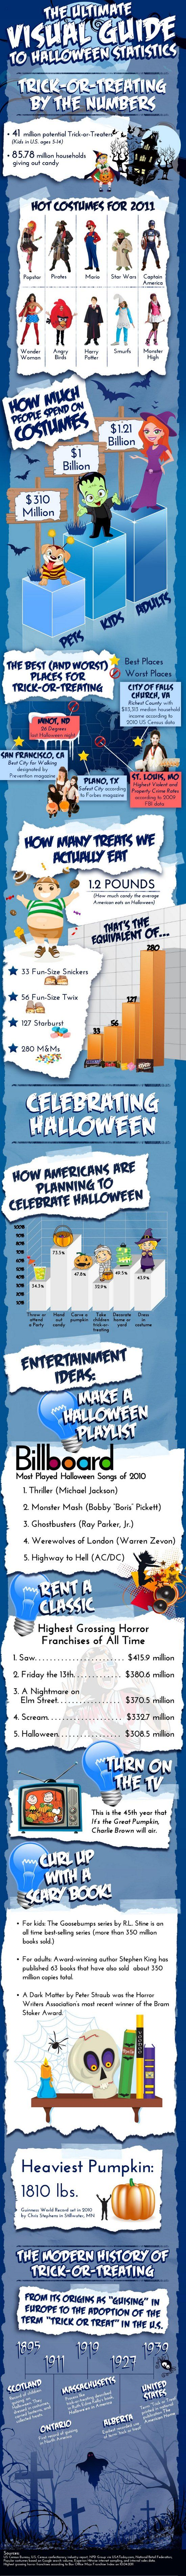 The Ultimate Visual Guide to Halloween Statistics